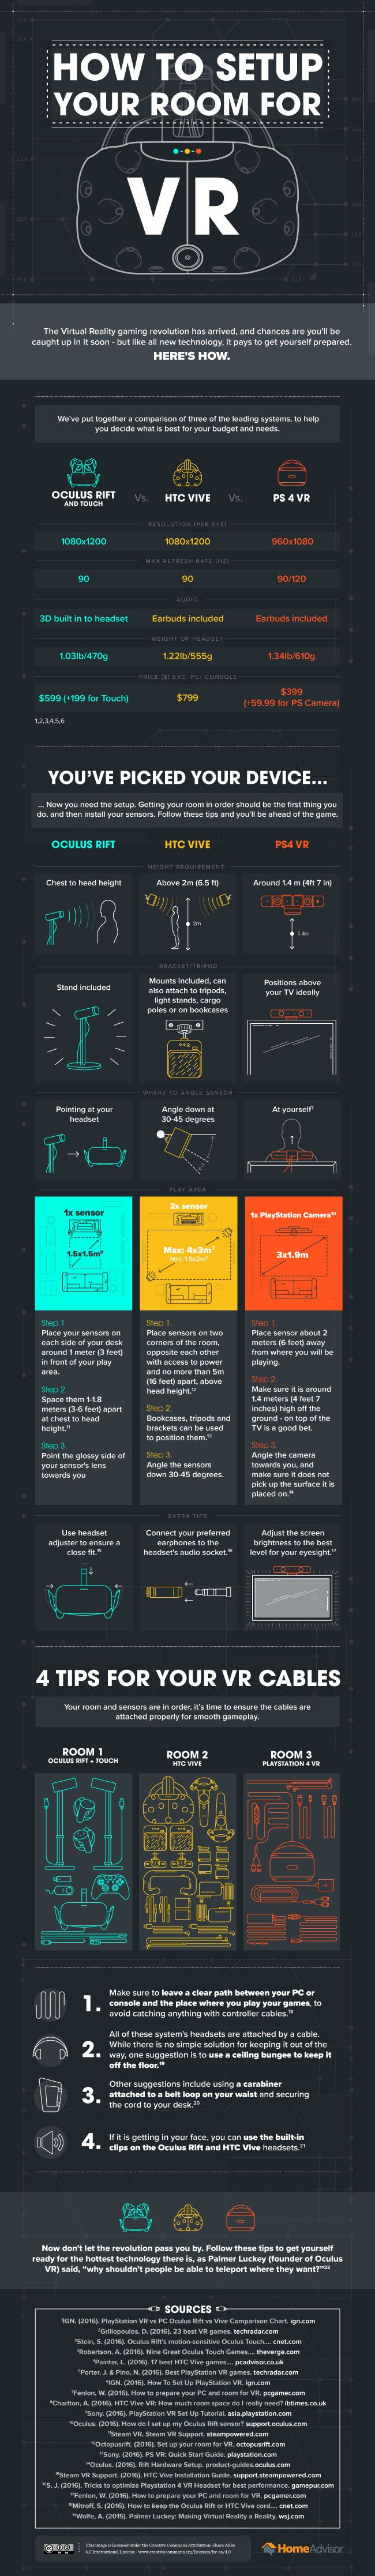 How to Setup Your VR Room [Infographic] Best Infographics